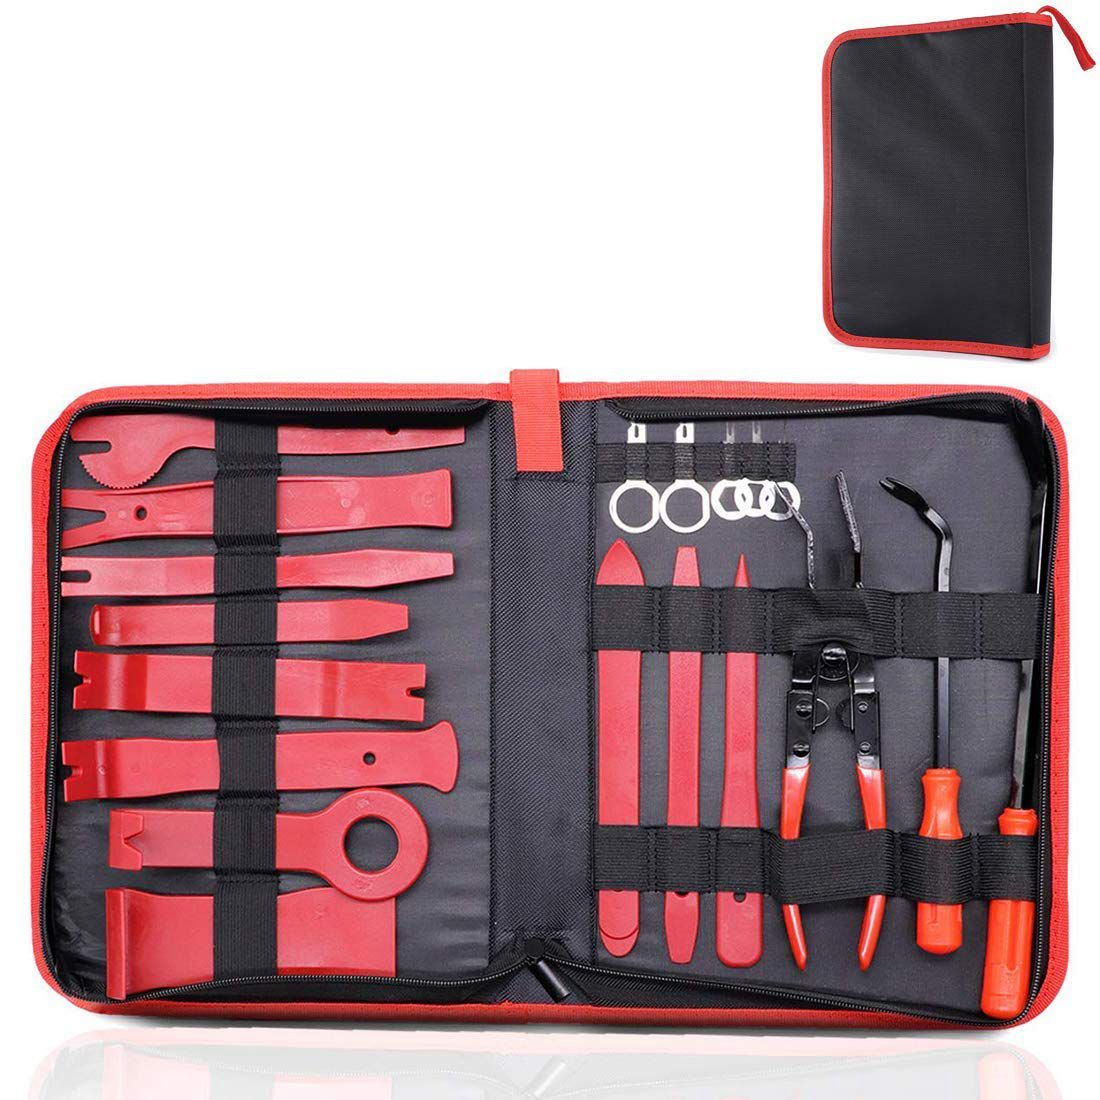 19 pcs Trim Removal Tool Set , Car Panel Removal Tool, Auto Trim Removal Tool Kit with Storage Bag19 pcs Trim Removal Tool Set , Car Panel Removal Tool, Auto Trim Removal Tool Kit with Storage Bag